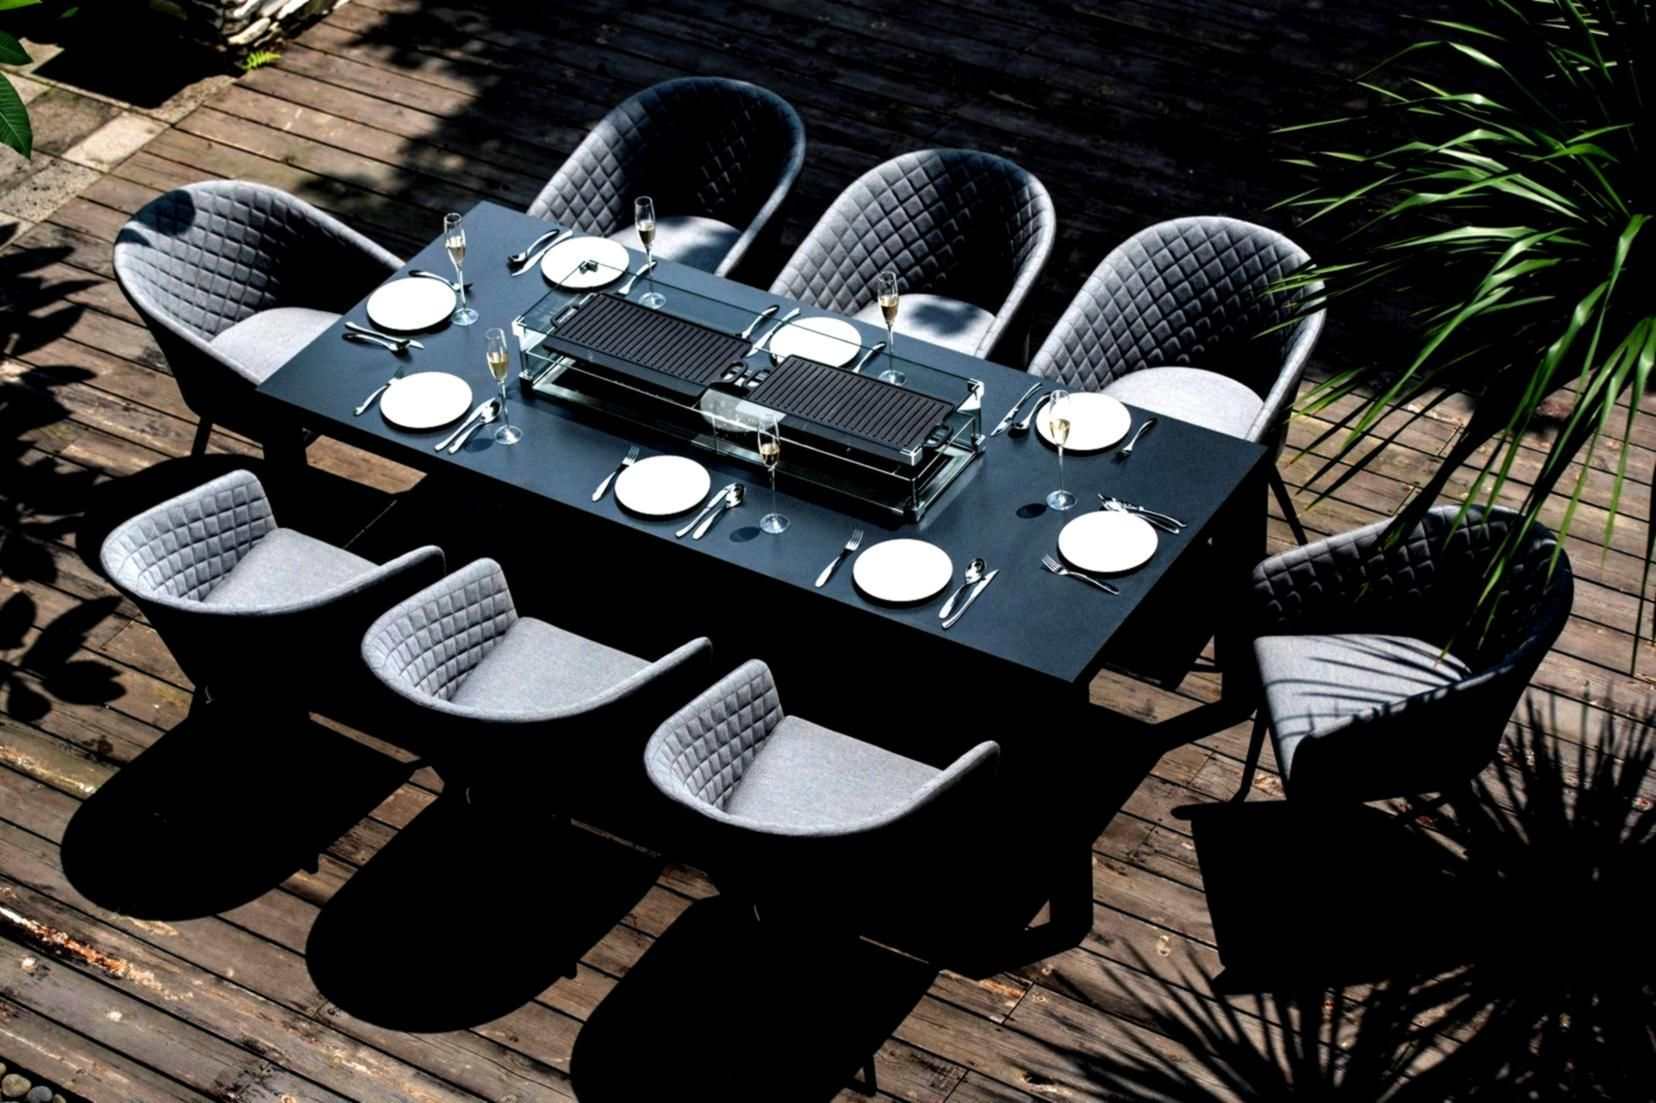 Flanelleambition Rectangular Ambition Flanelle Firepit Ambition Firepit Flanelle Flanelleambition Rectangular Dining Set Outdoor Fabric Fire Pit Table Modern outdoor fire dining table